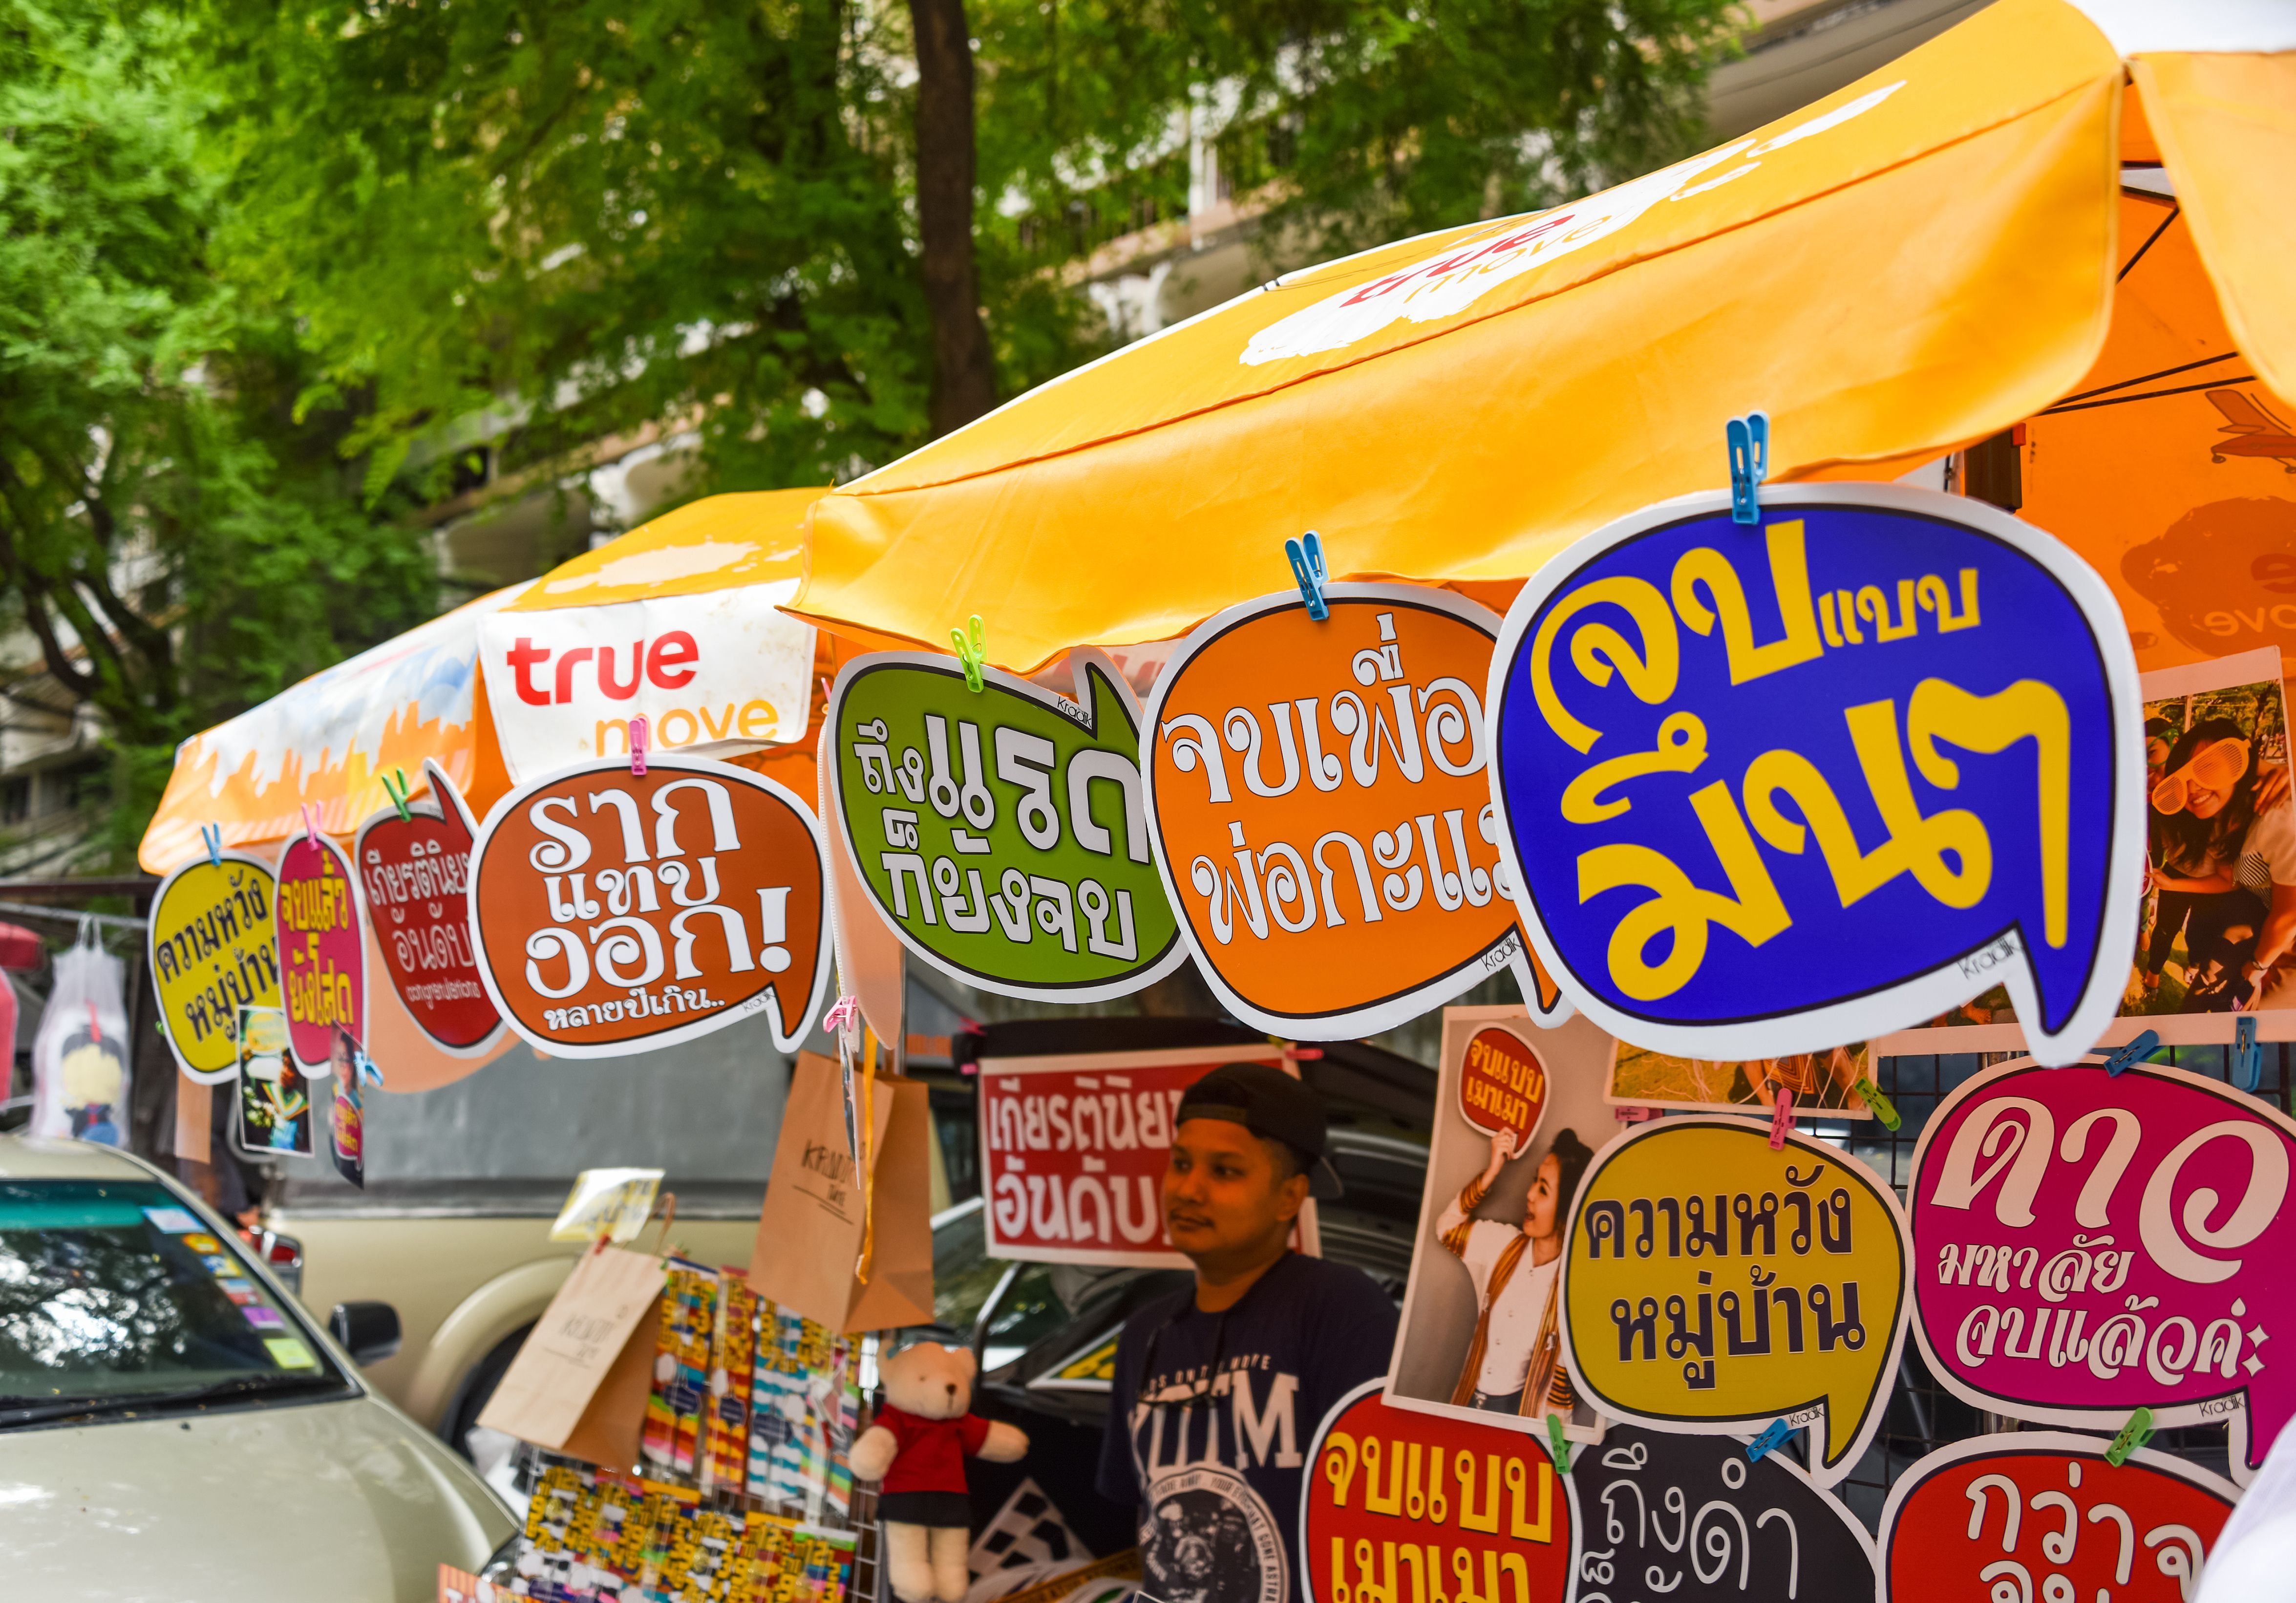 Funny labels in Thai language on sale